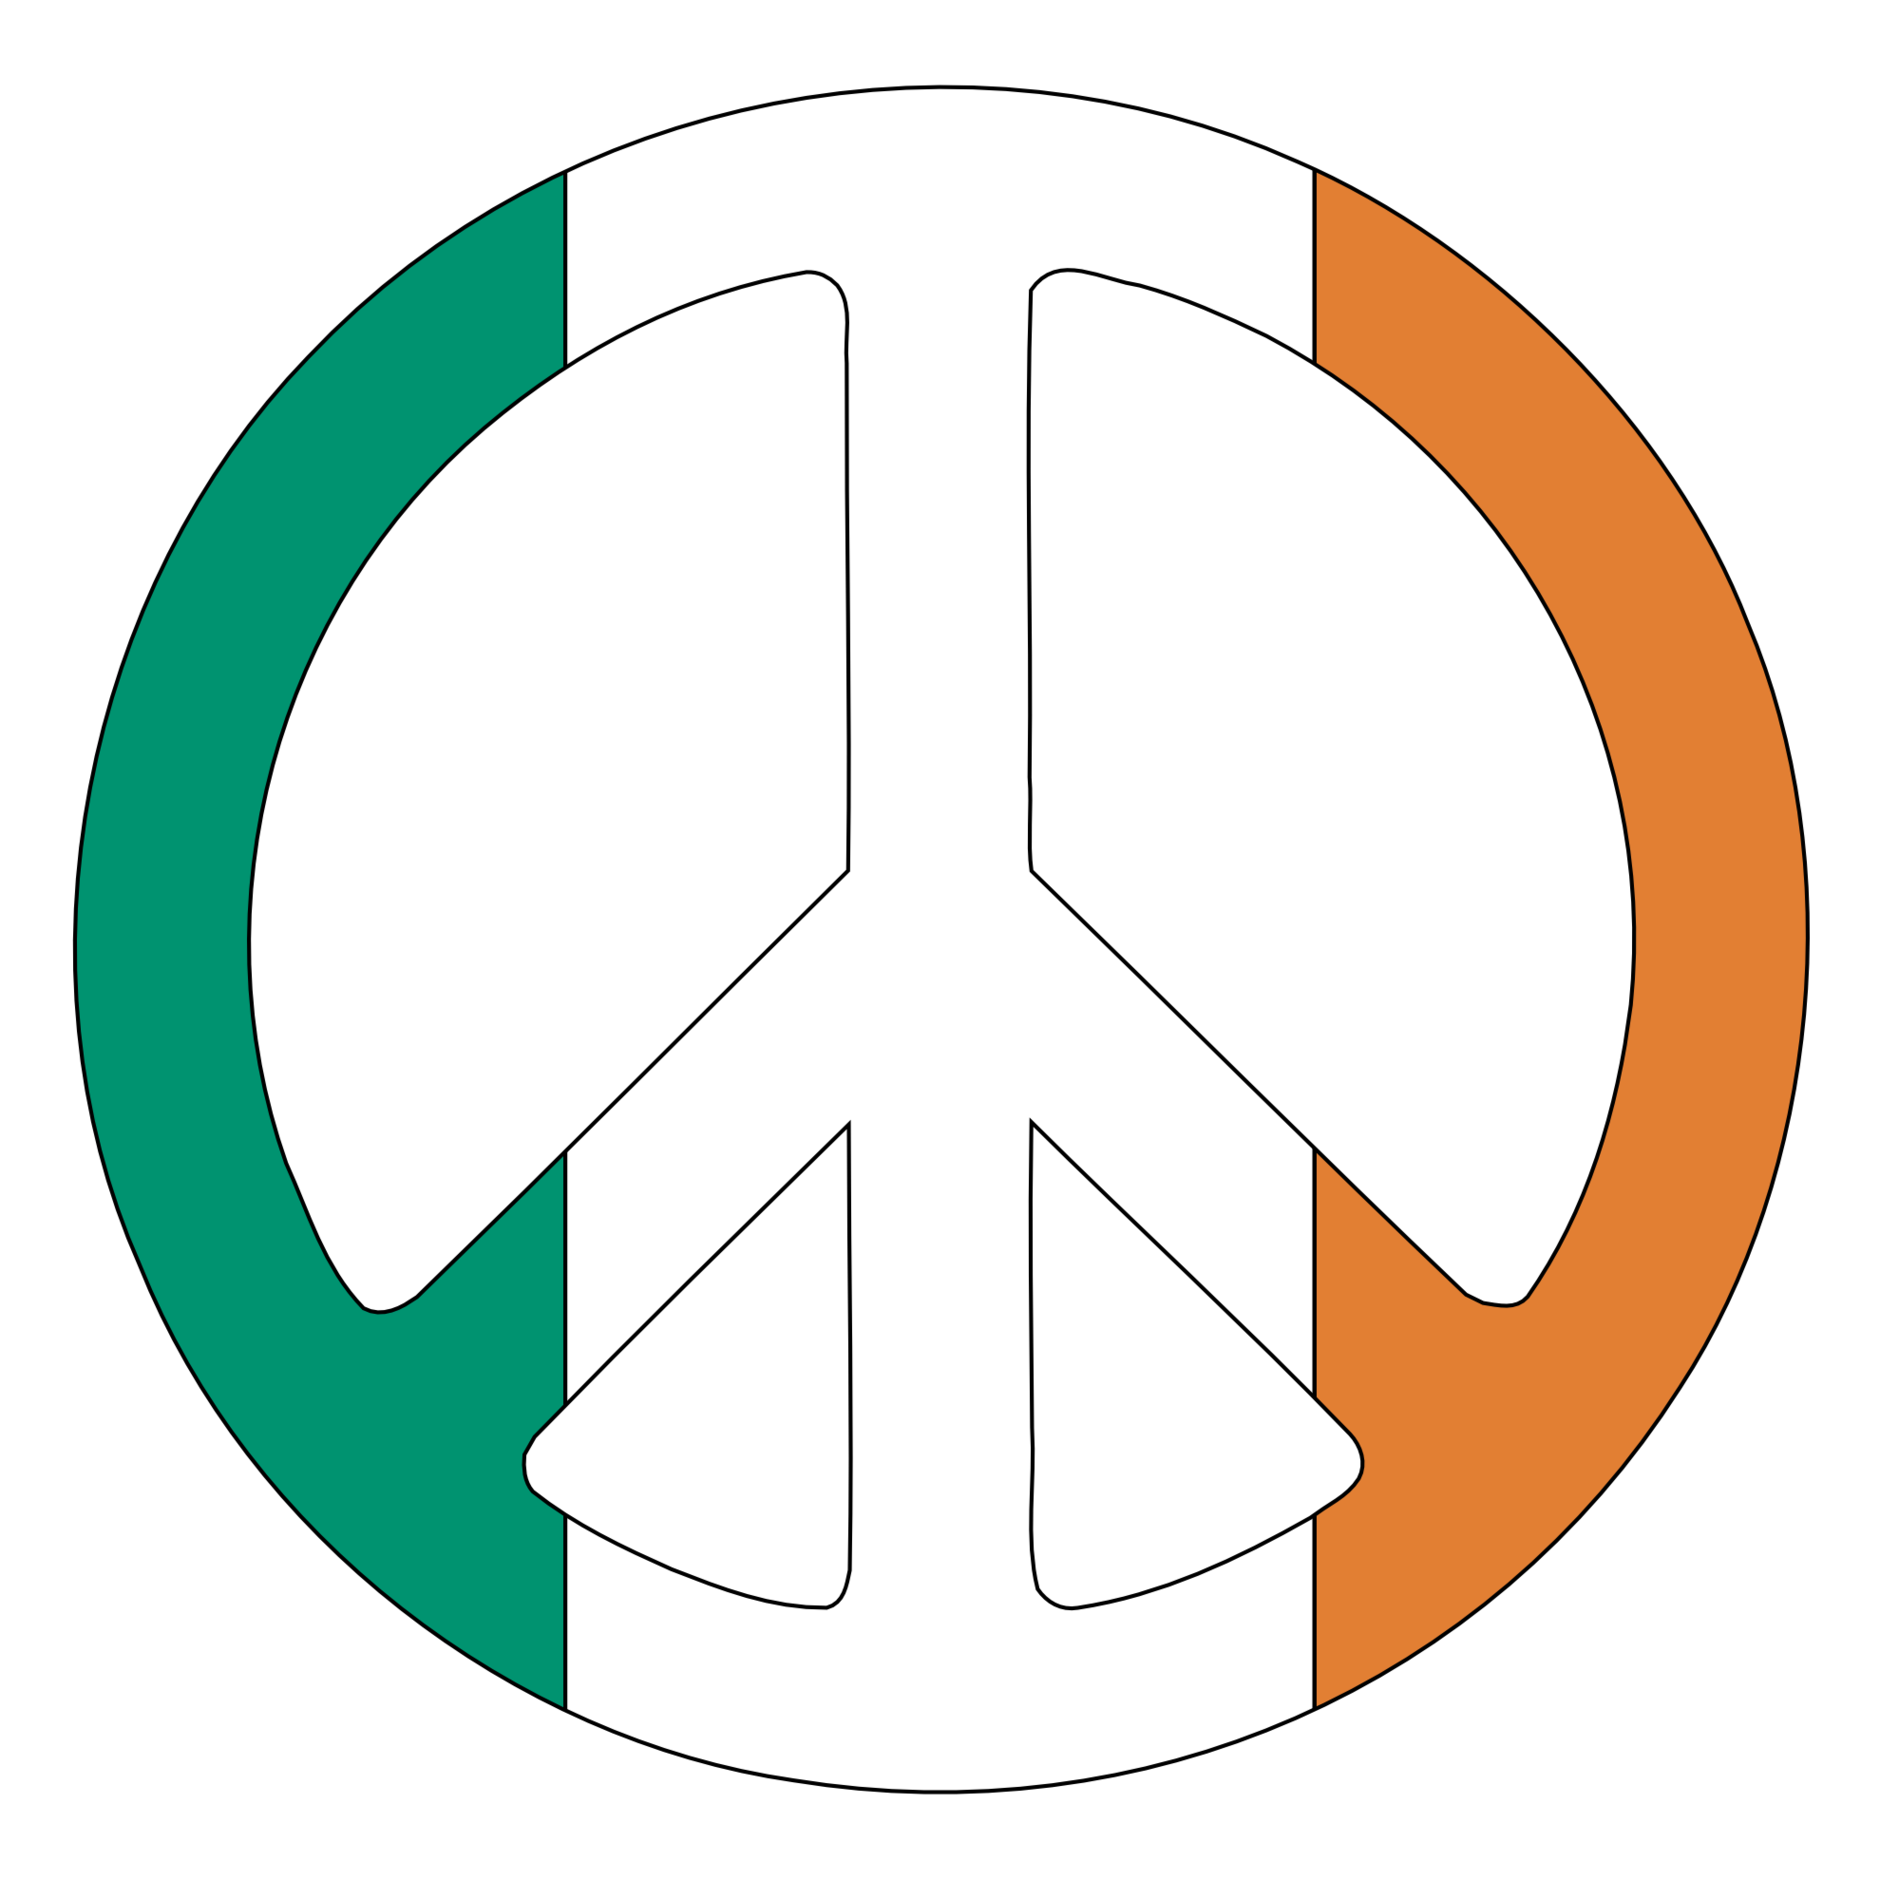 Peace clipart world peace 3 peace Clipartix peace clipart